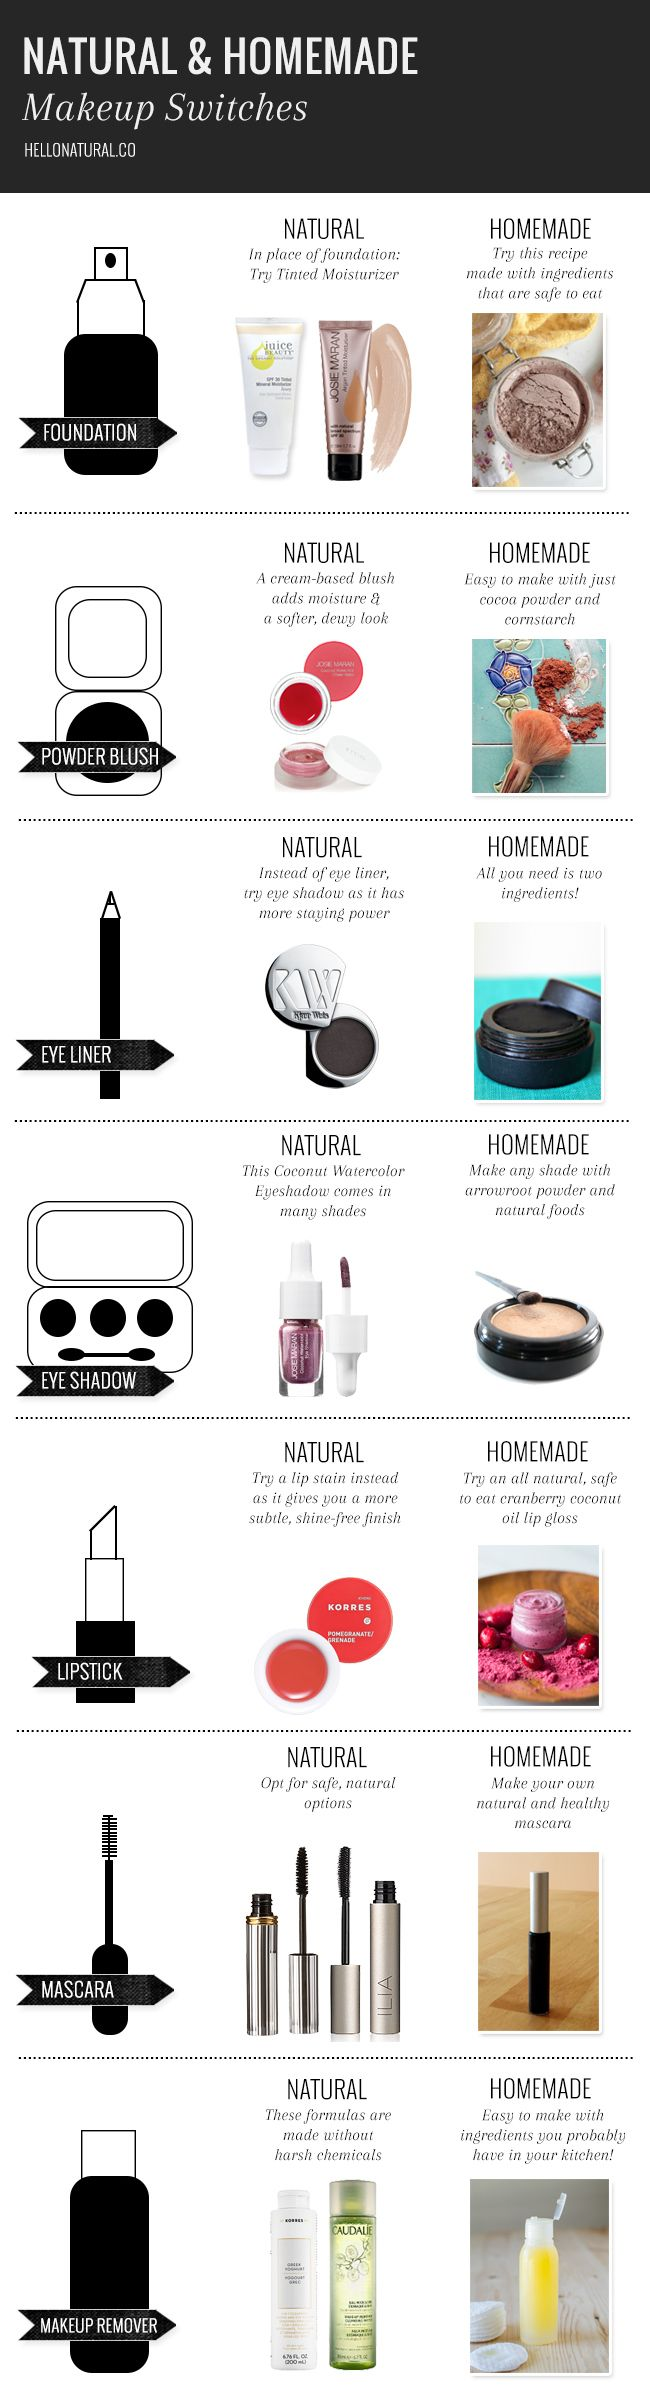 Kitchen Cosmetics Recipes For Making Your Own Skin Care Product